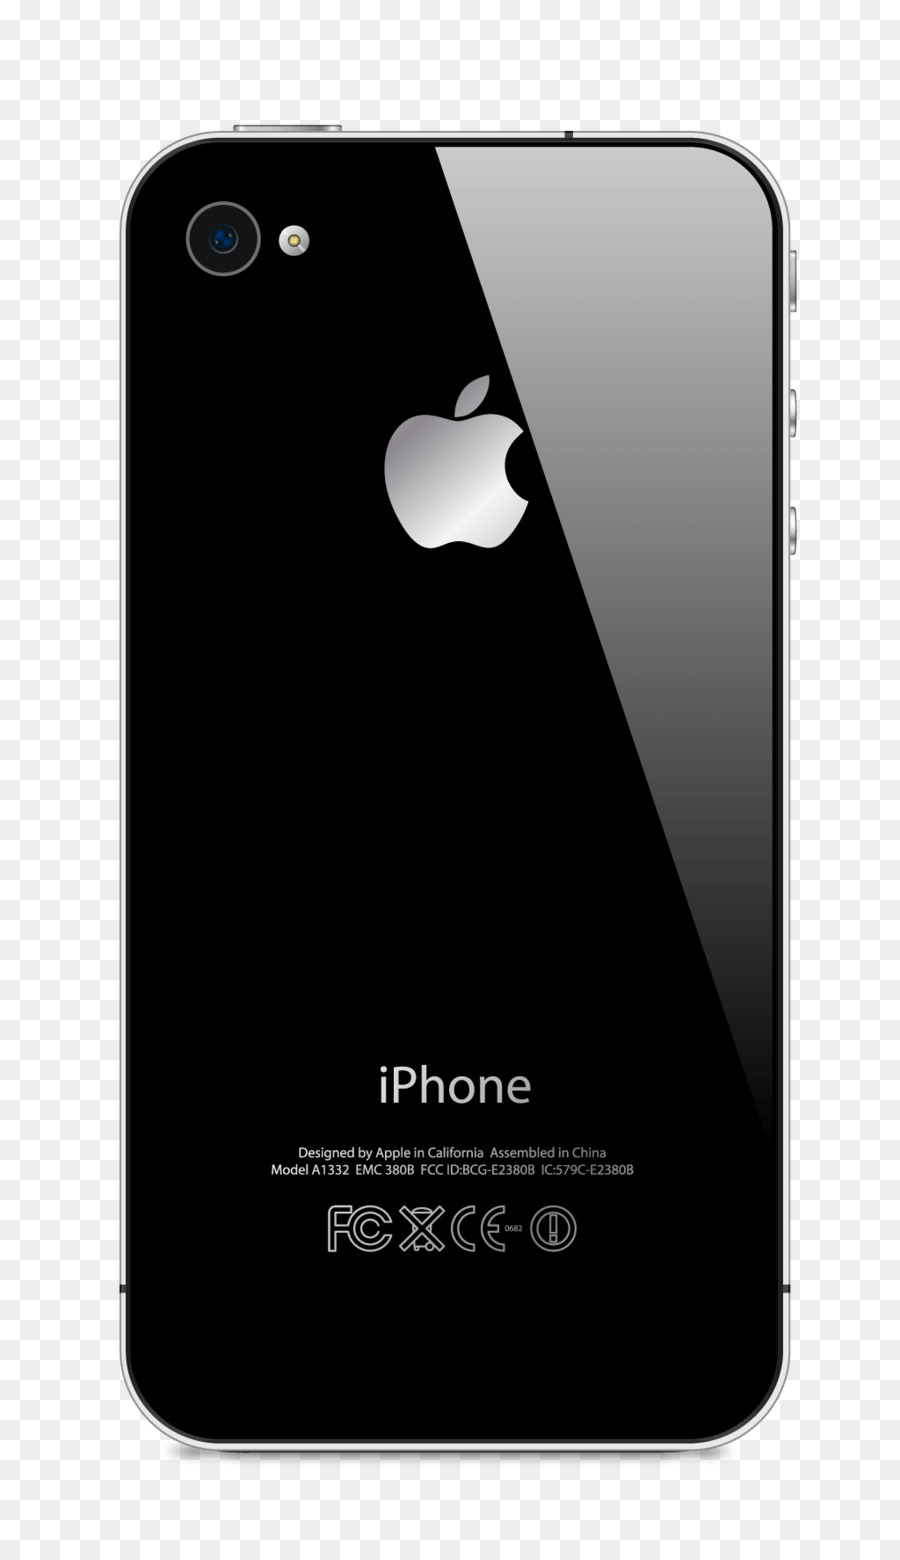 Iphone Background clipart.